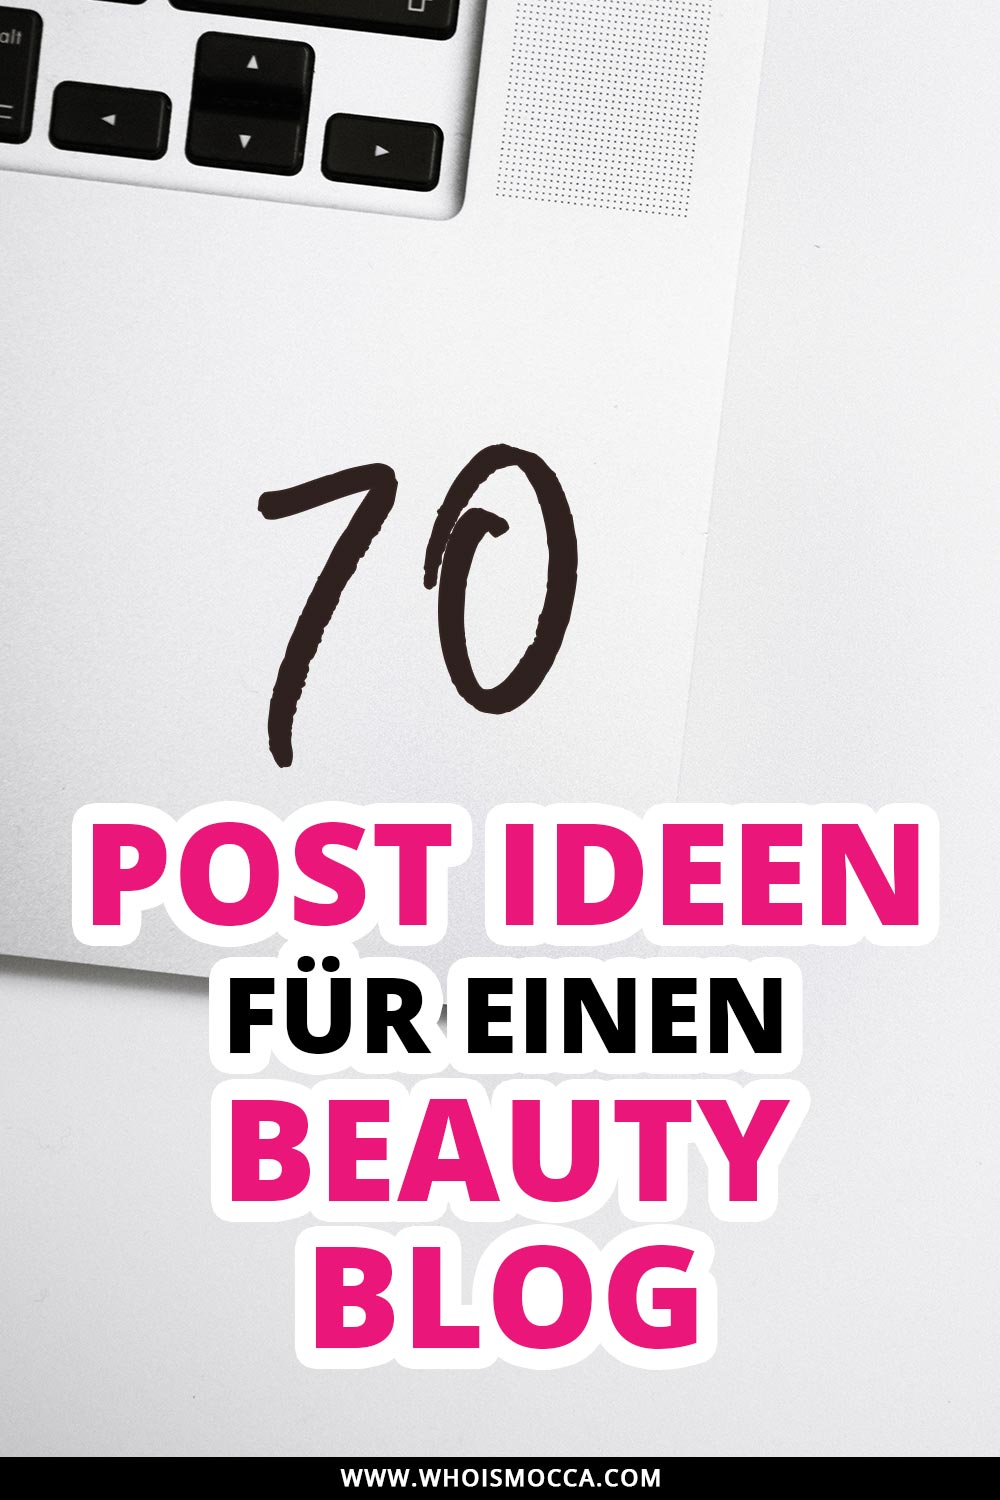 70 Post Ideen für einen Beauty Blog, Blogger Tipps und Tricks, Blogger Inspiration für Posts, Blogger Tutorials, www.whoismocca.com